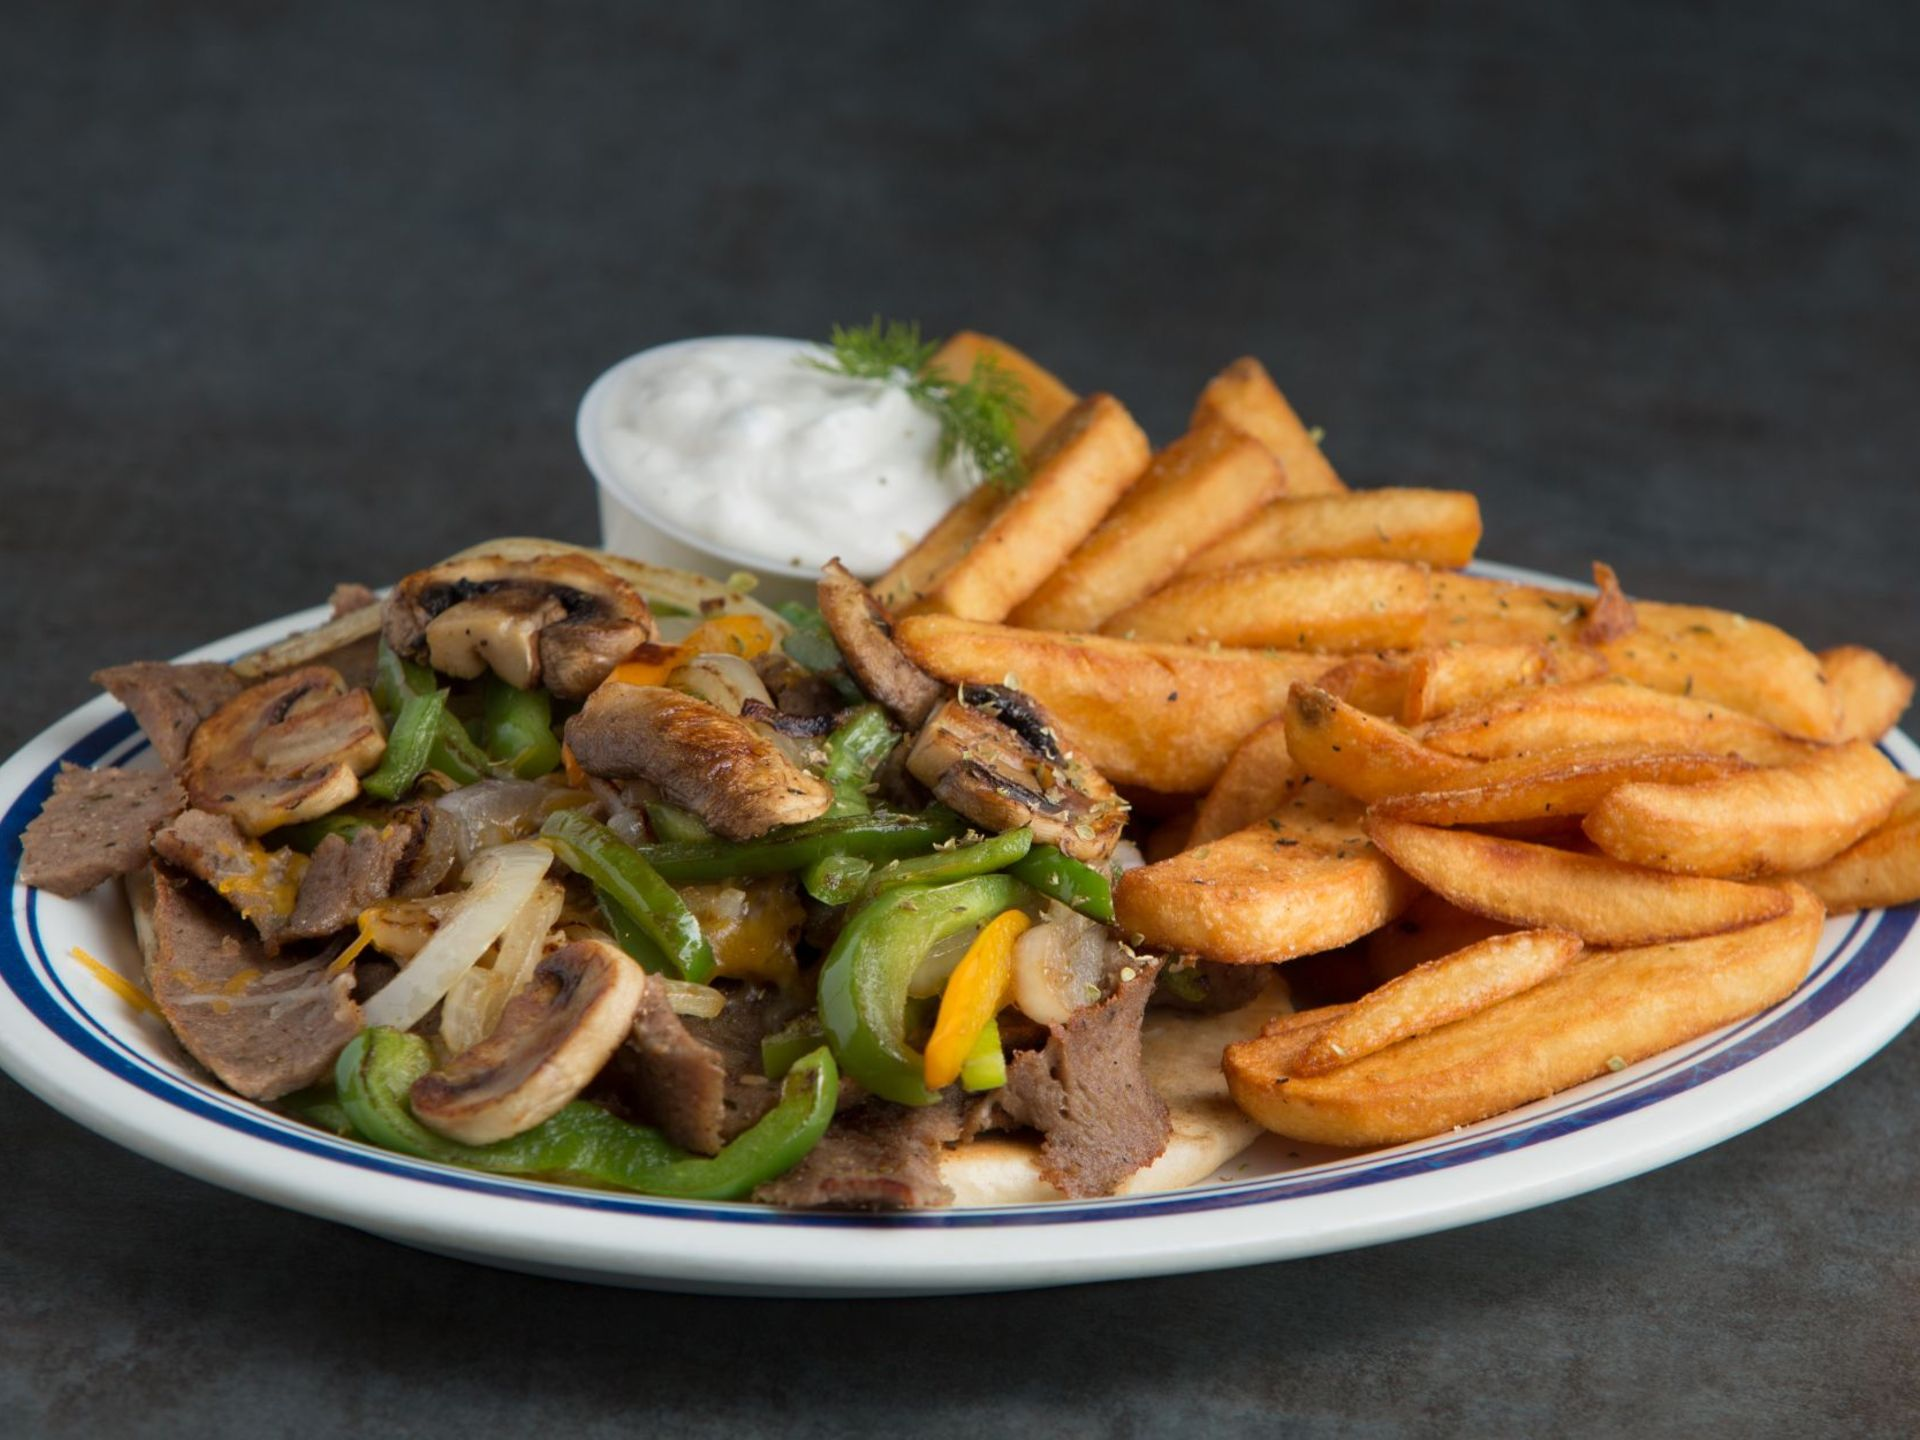 Gyro plate with peppers, onions, mushrooms and fries